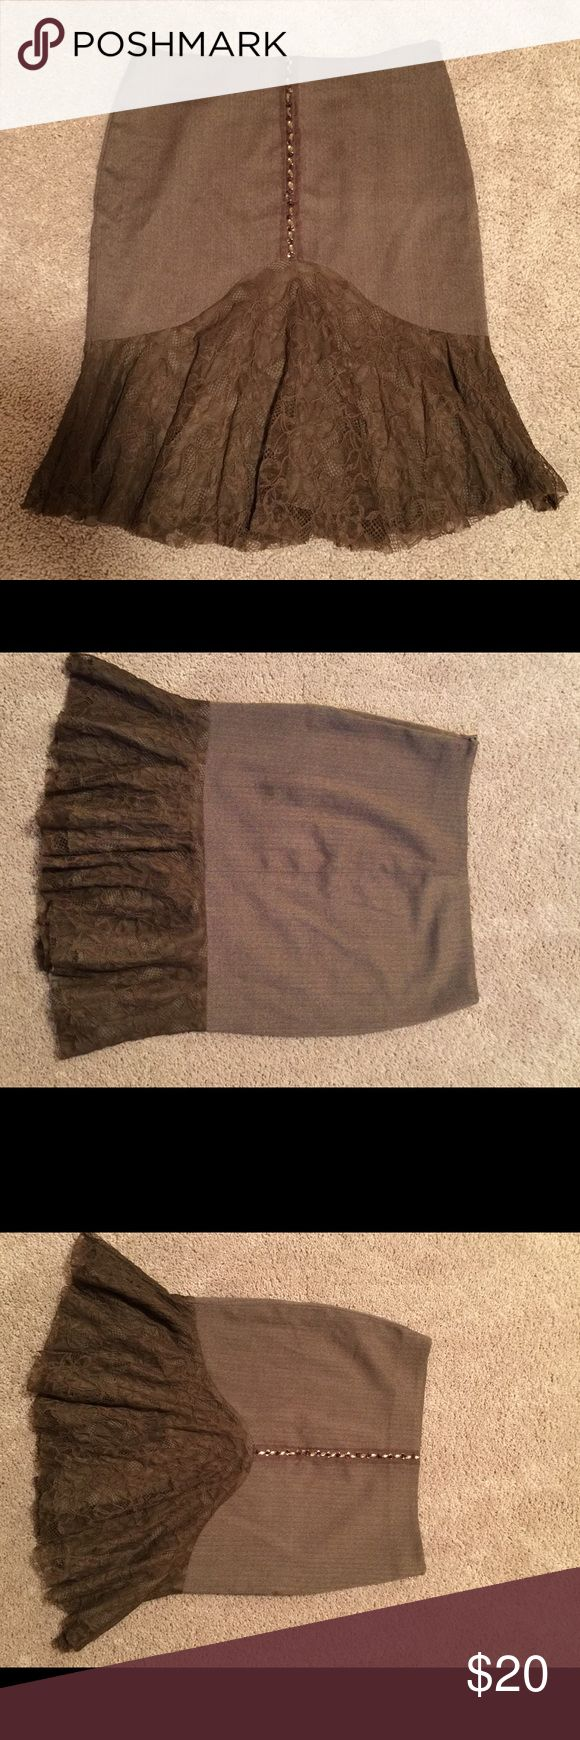 BeBe Brown Pencil Skirt BeBe brown pinstripe pencil skirt. Jewel detail down the front middle. Lace bottom. bebe Skirts Pencil